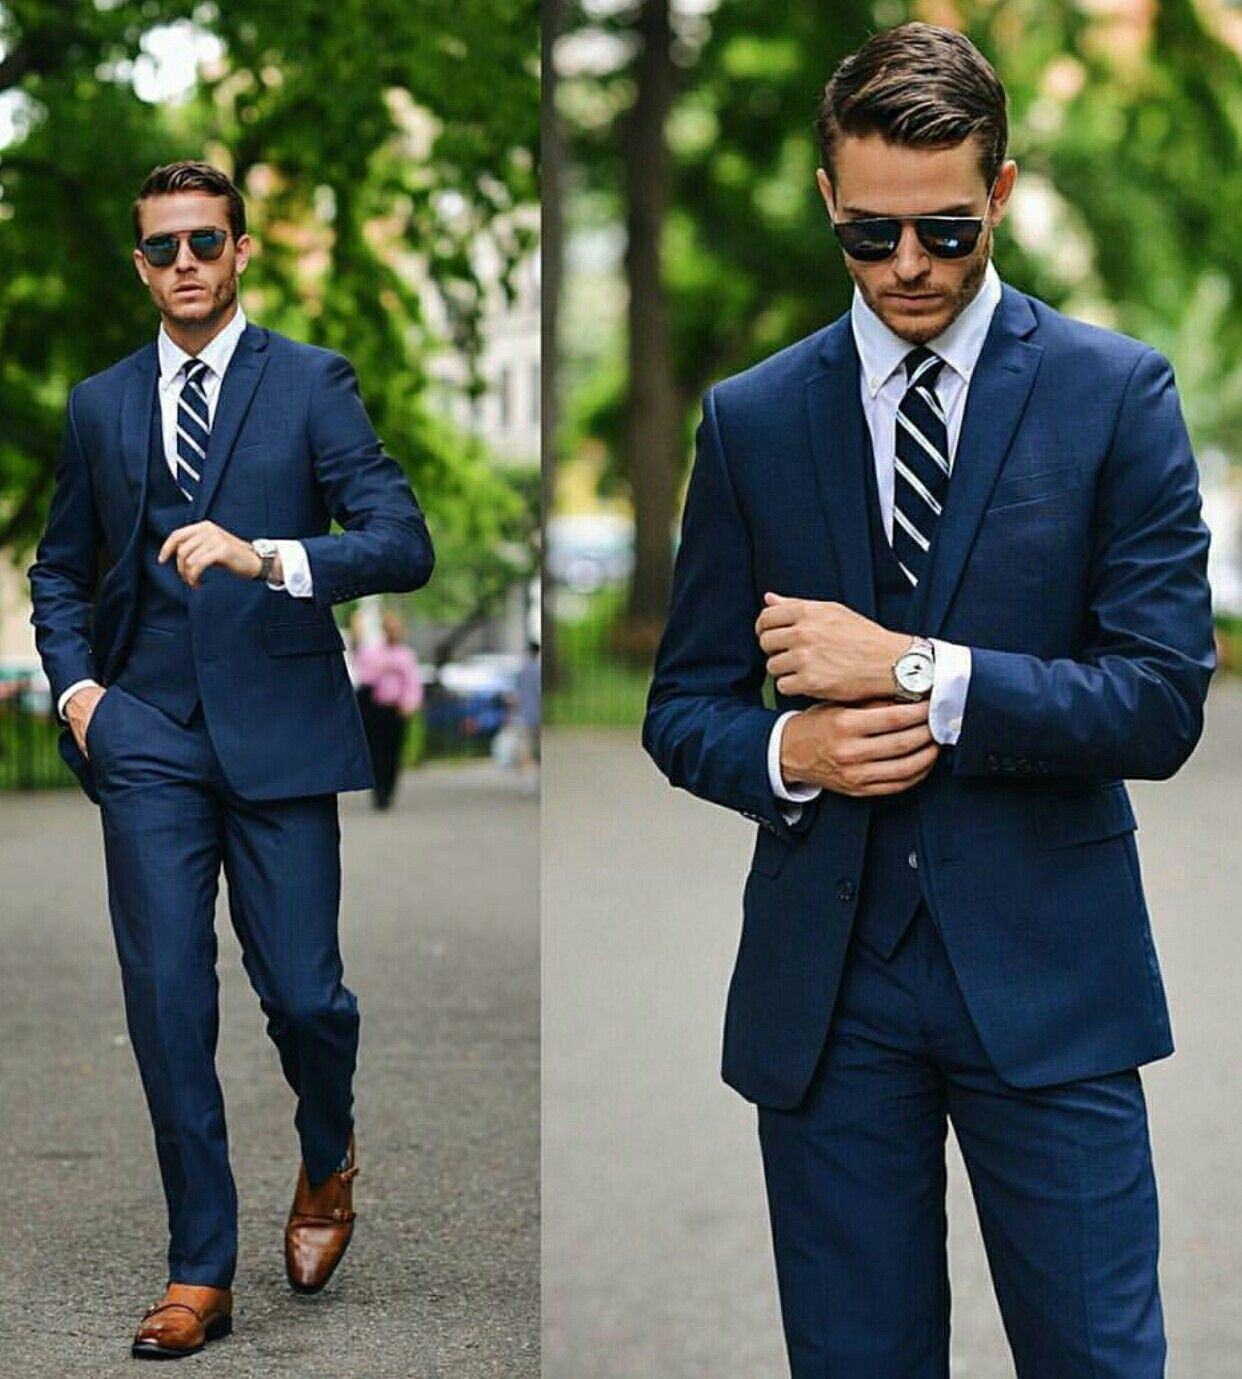 iamgalla with a nice navy suit combo dapper lifestyle mens suits  @iamgalla with a nice navy suit combo